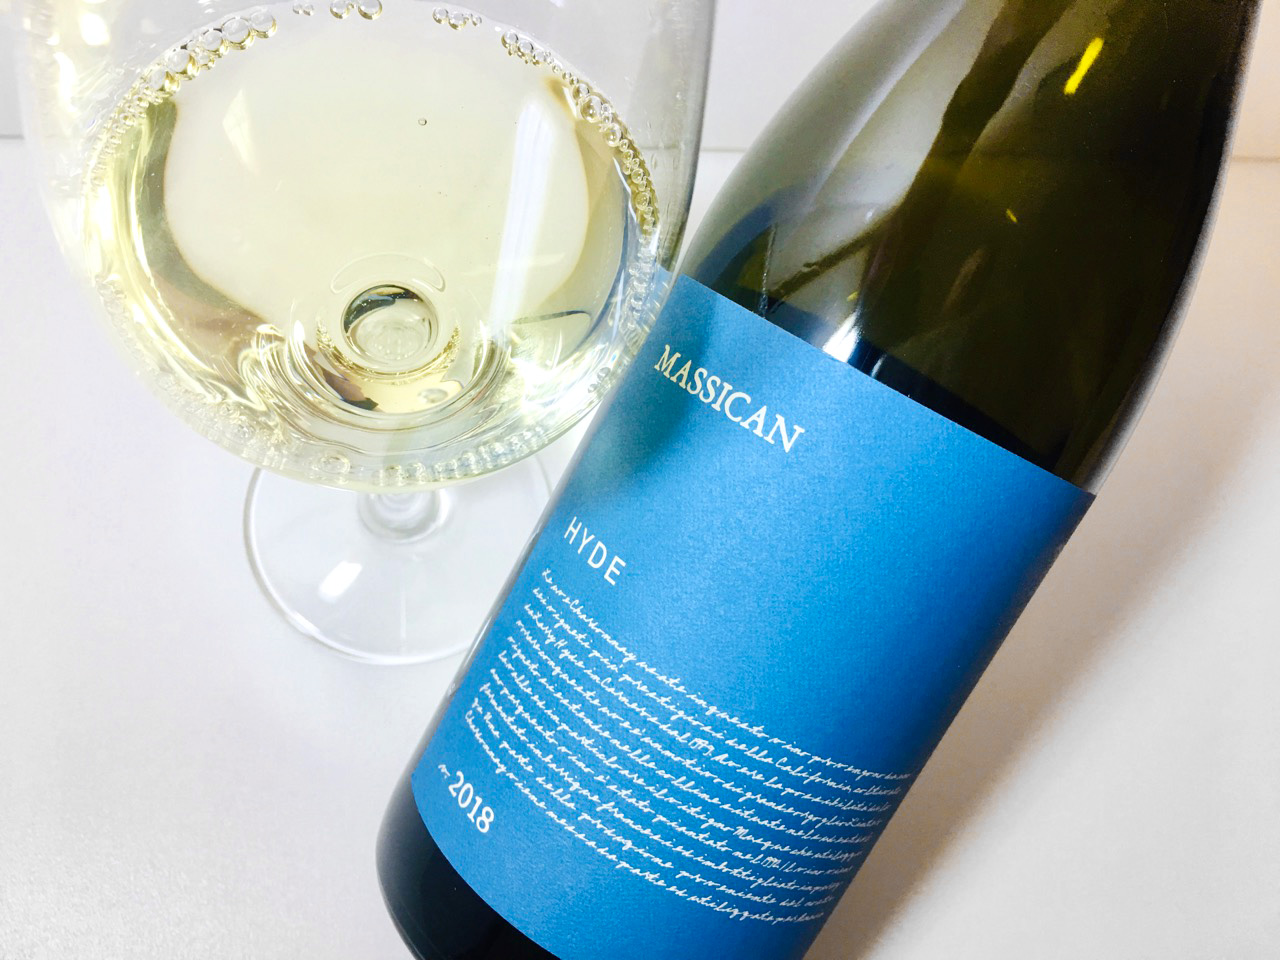 2018 Massican Chardonnay Hyde Vineyard Napa Valley